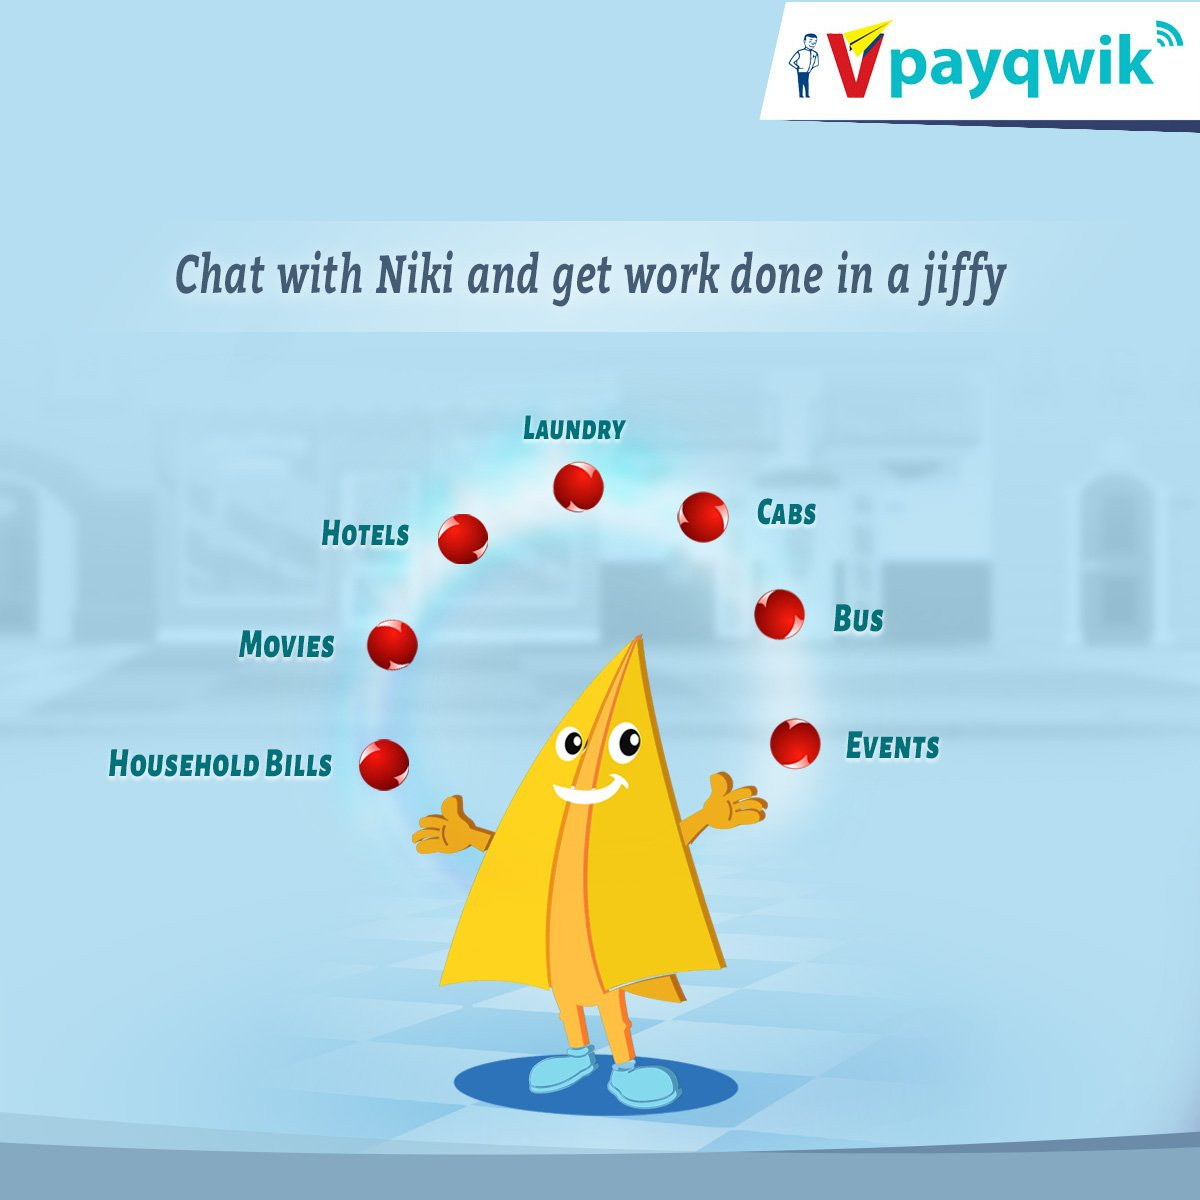 A quick and easy option to book tickets and pay bills as you chat on VPayQwik App. #VPayQwik #ChatBot #DigitalWallet #BillPayments<br>http://pic.twitter.com/EAuFRQ5aGw